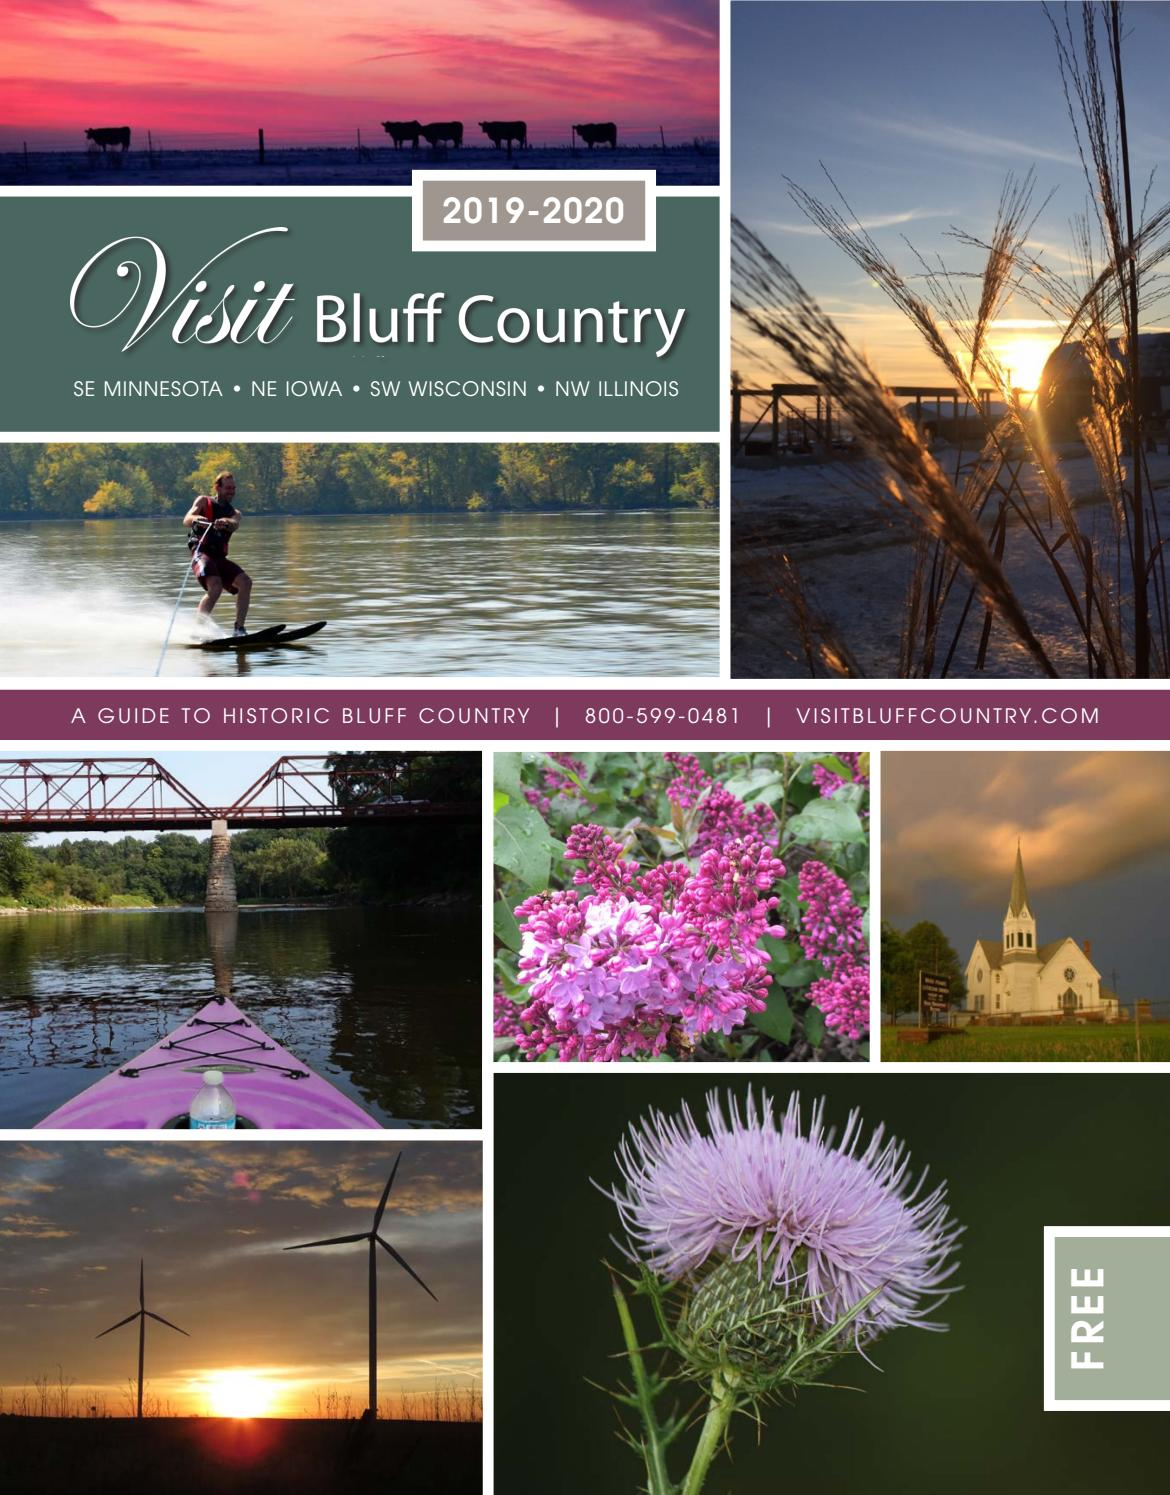 Eso Witches Festival 2020 Visit Bluff Country Magazine 2019 2020 by Visit Bluff Country   issuu